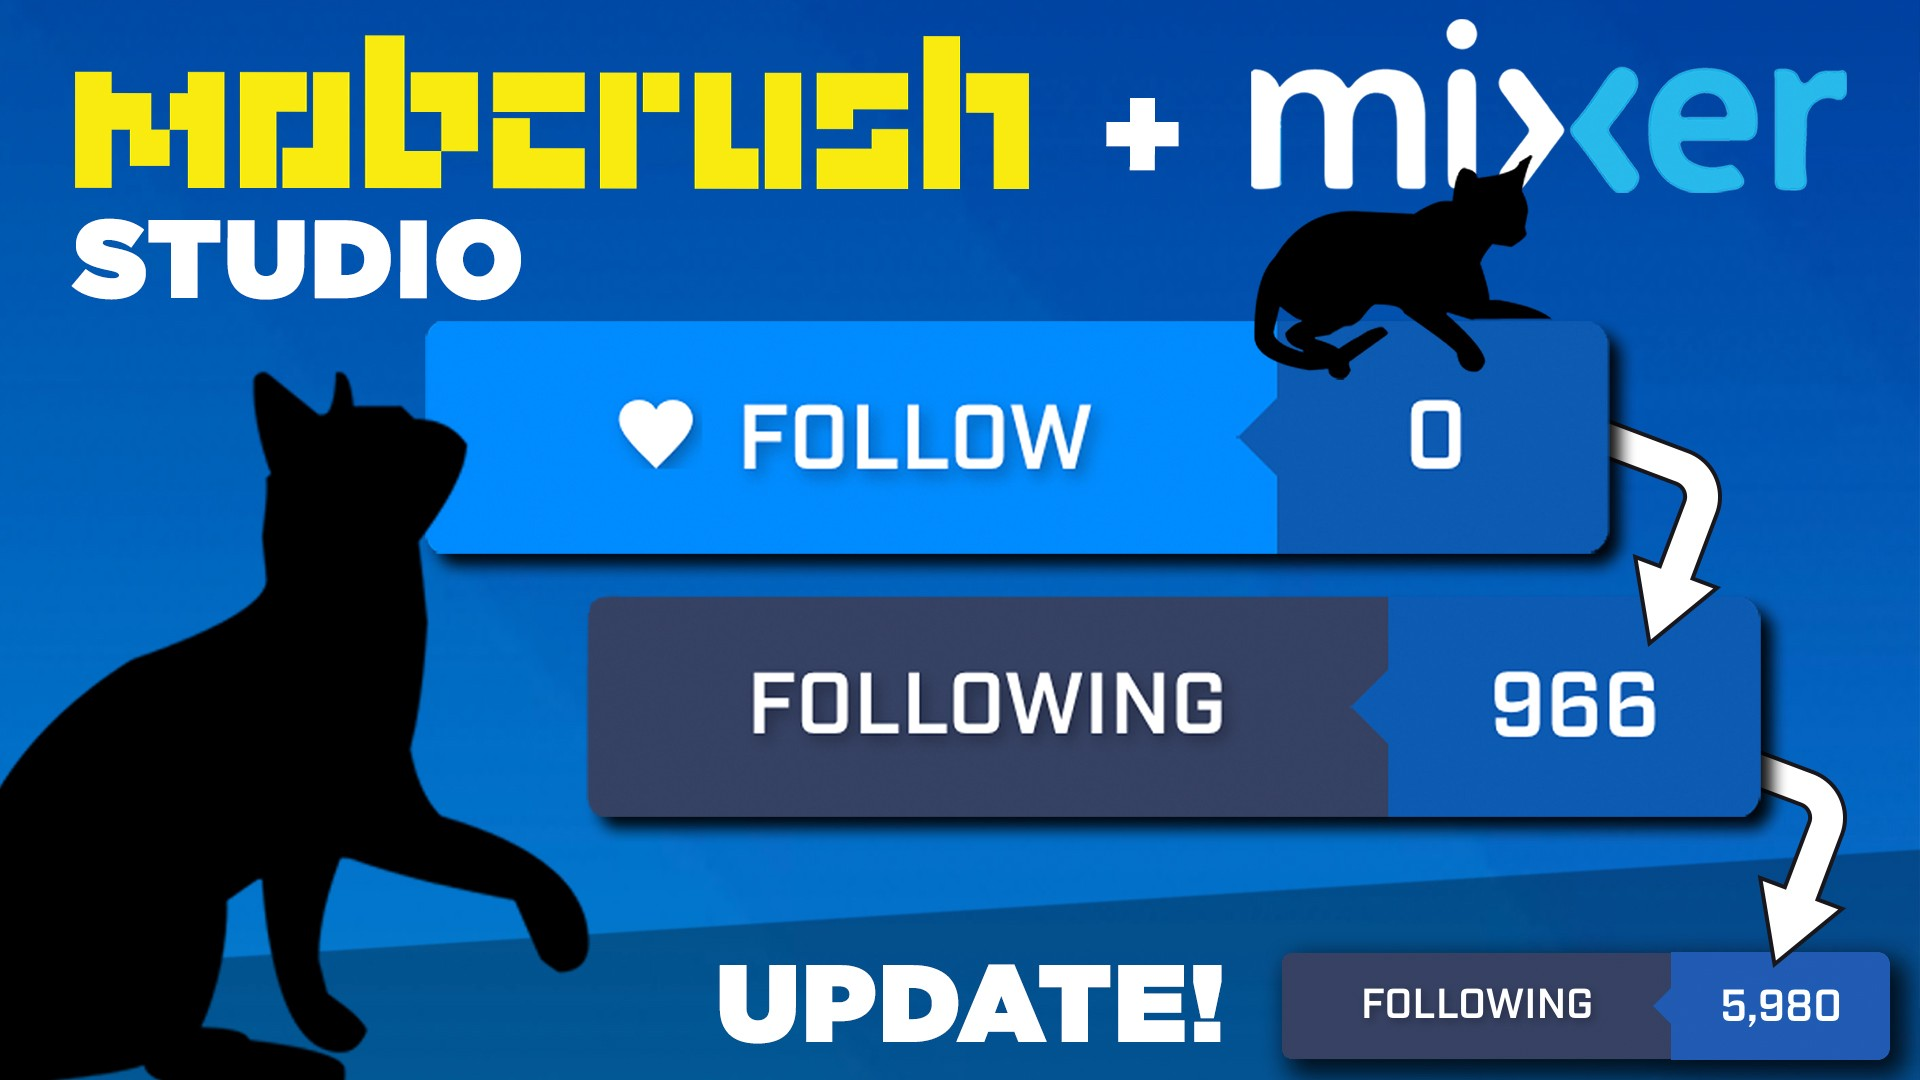 How one creator gained 900 followers on Mixer in less than a